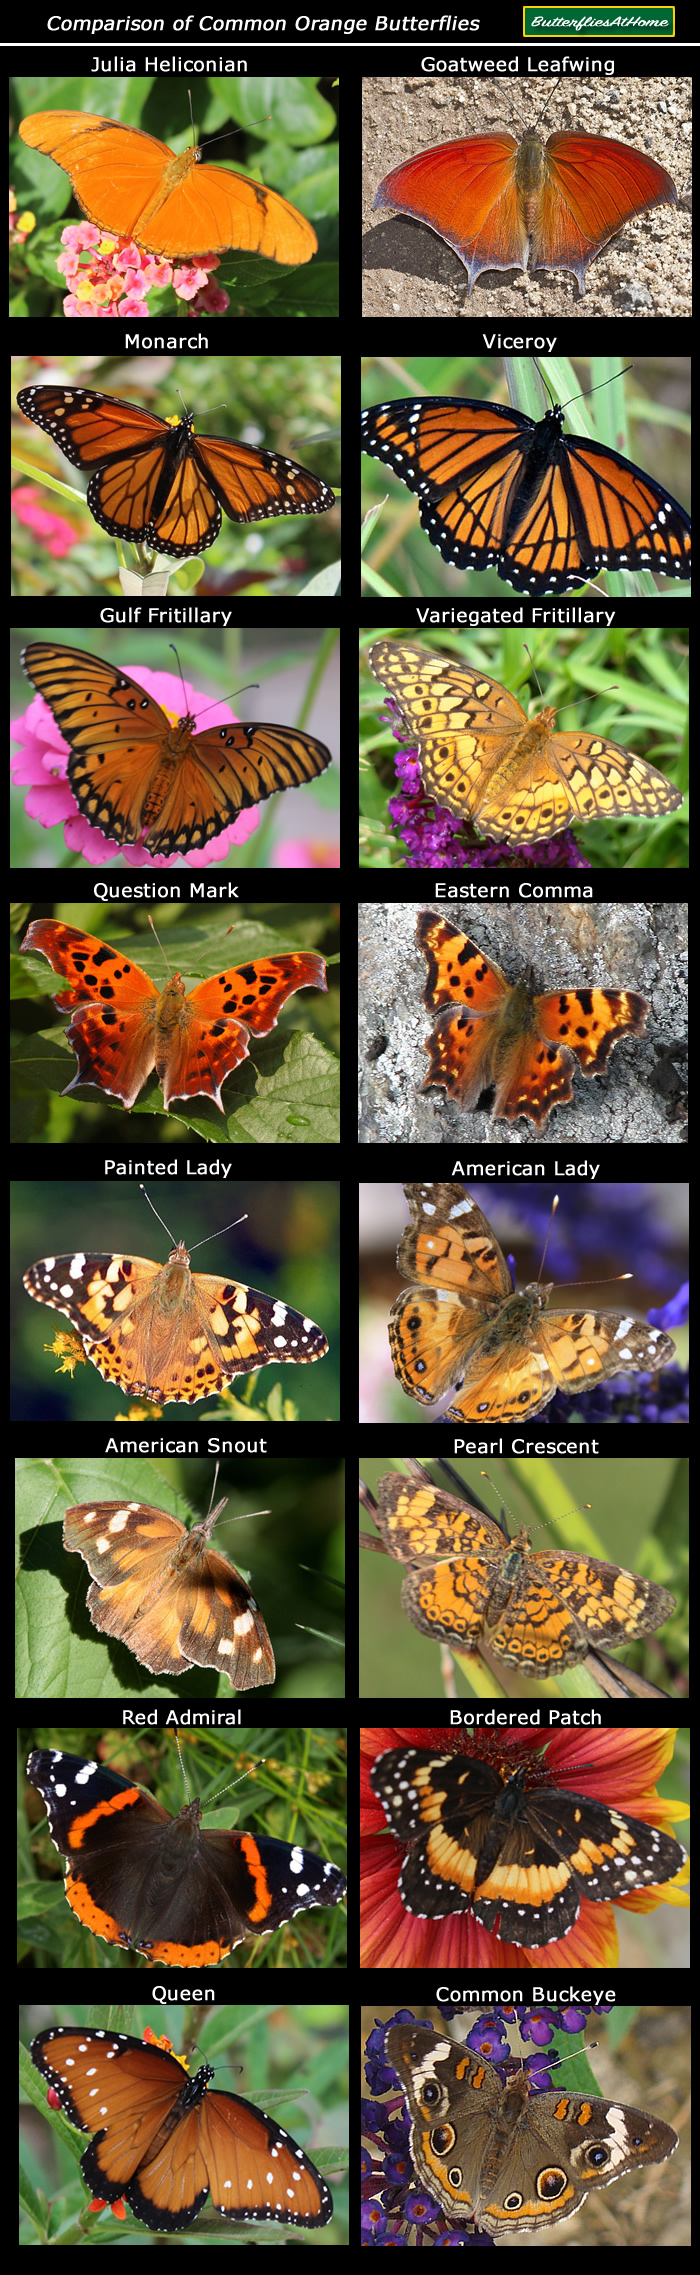 Identification chart comparing common orange colored butterflies